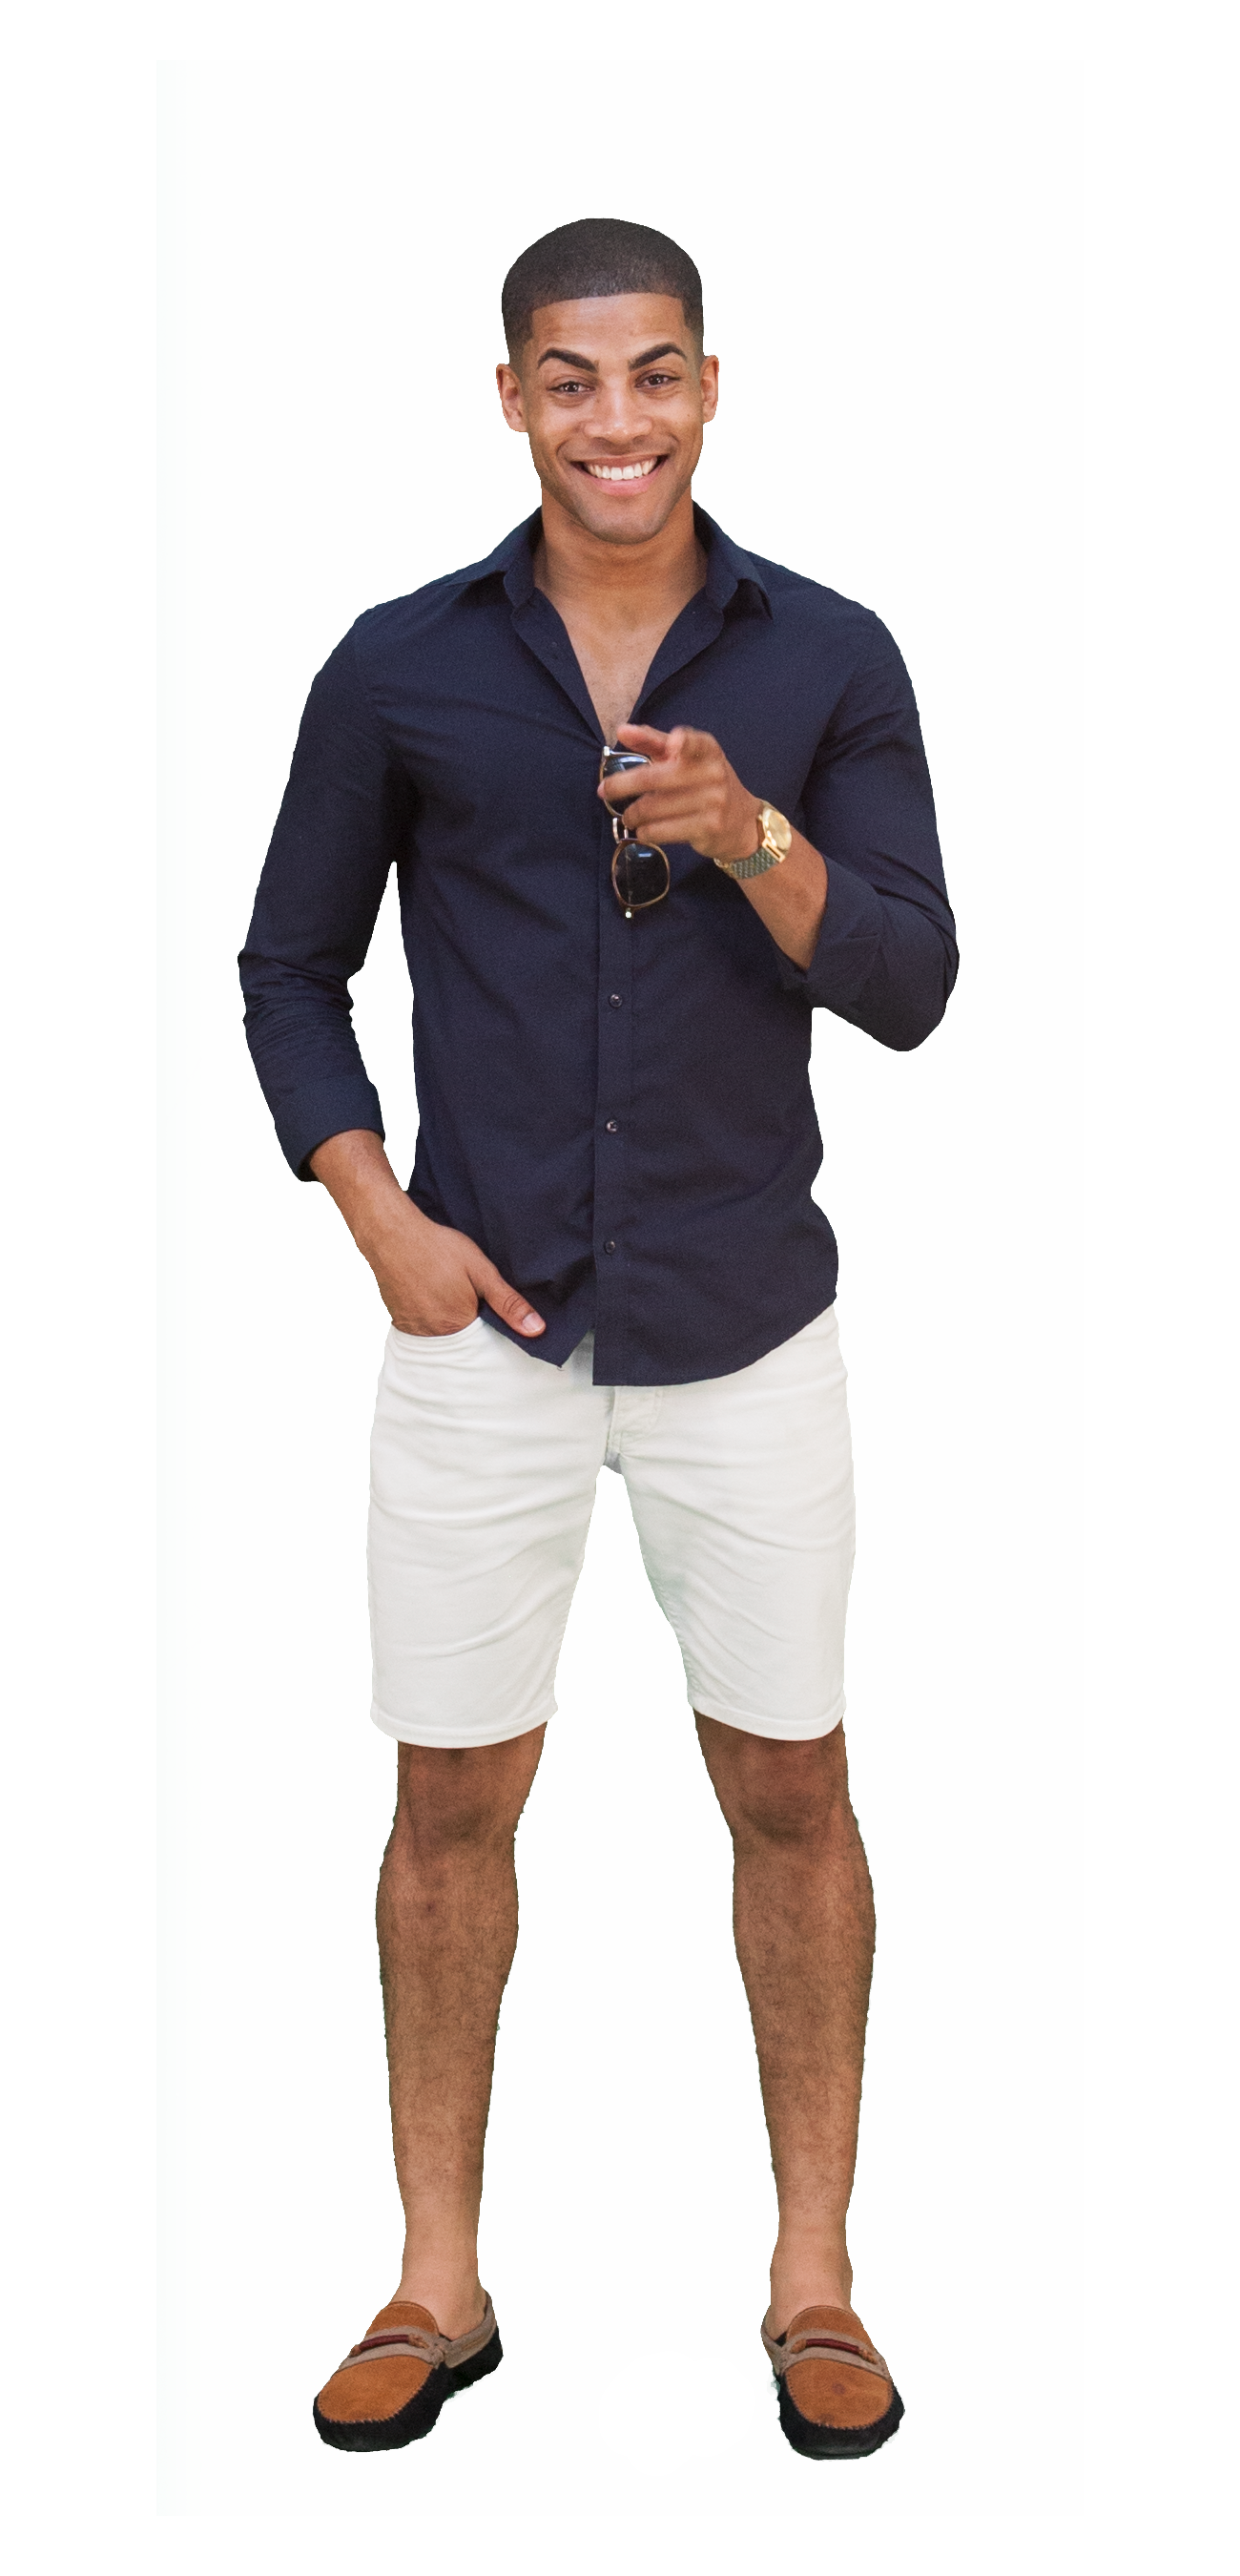 2d cut out people casual v 4 cadrender store